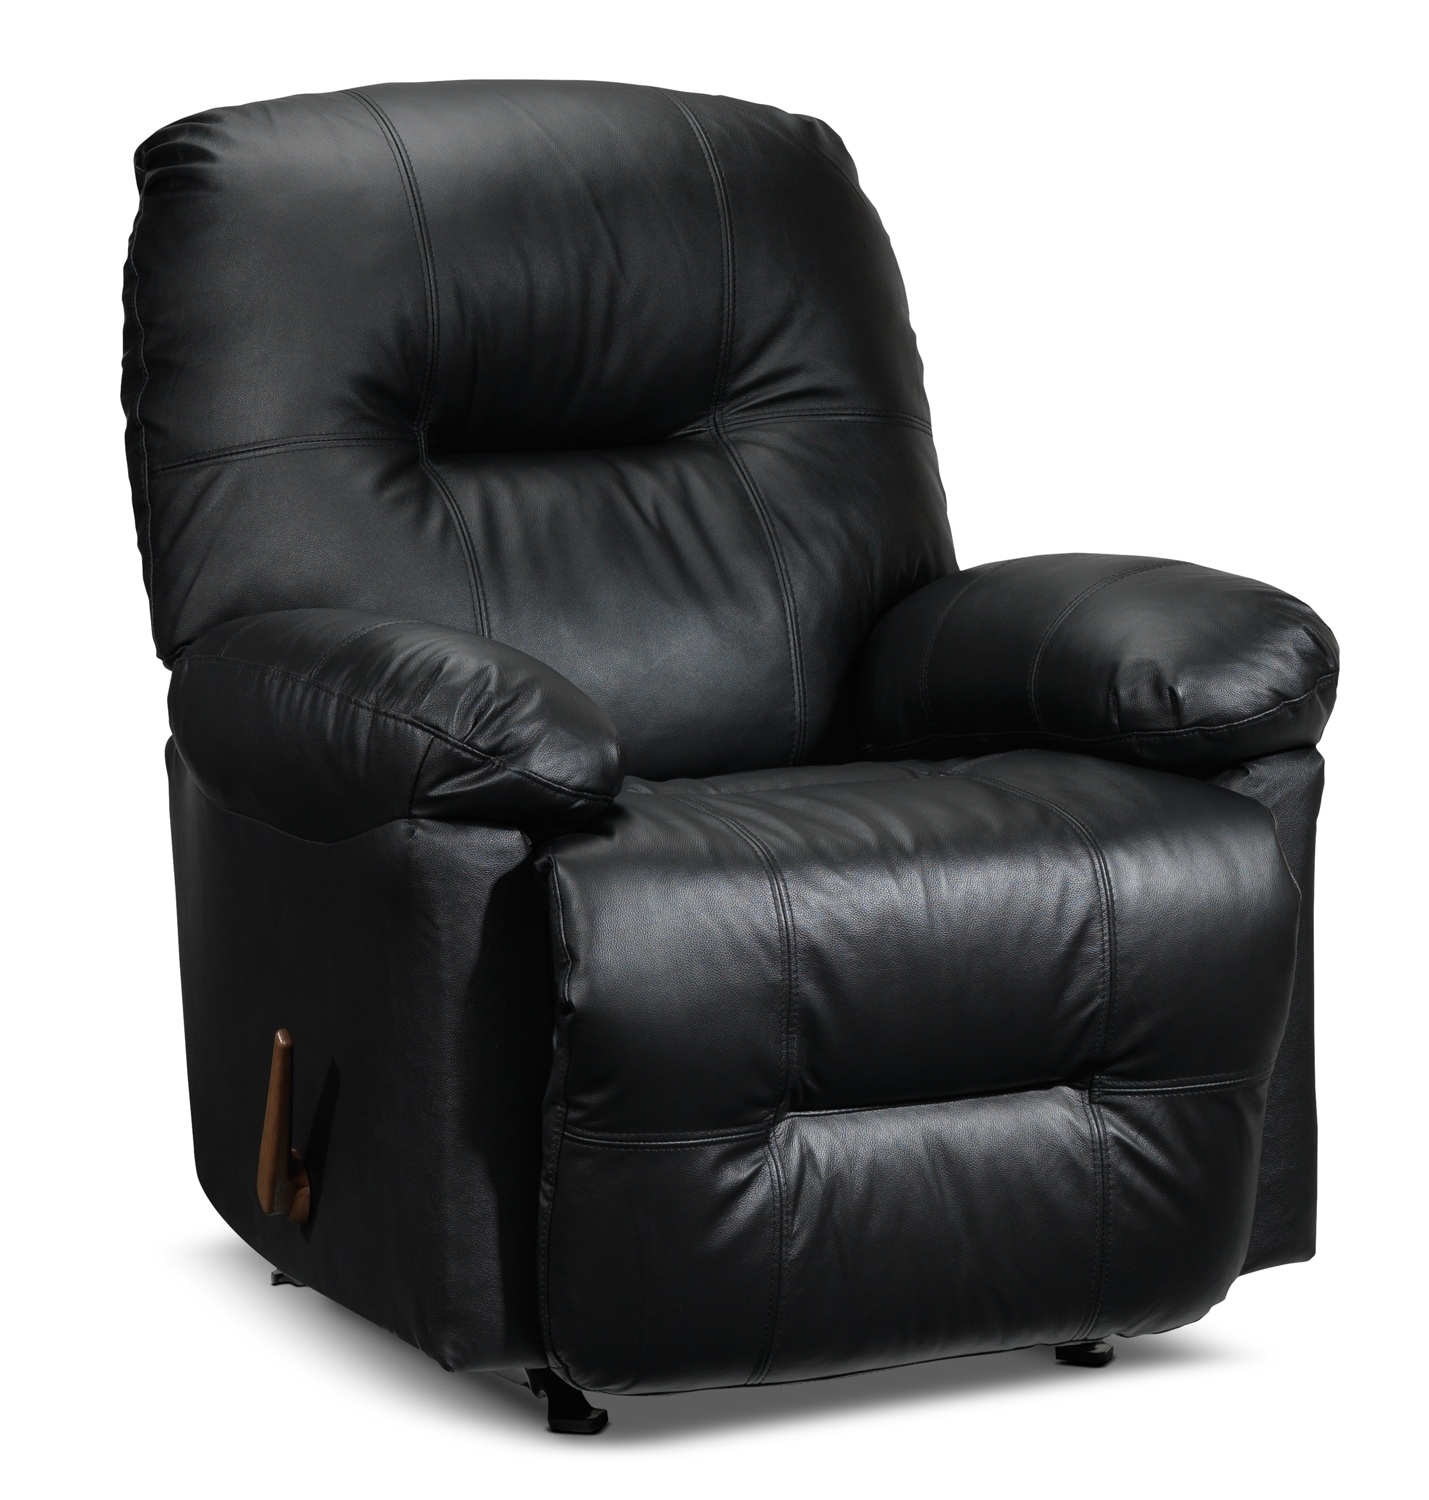 Living Room Furniture - Hunter Recliner - Black